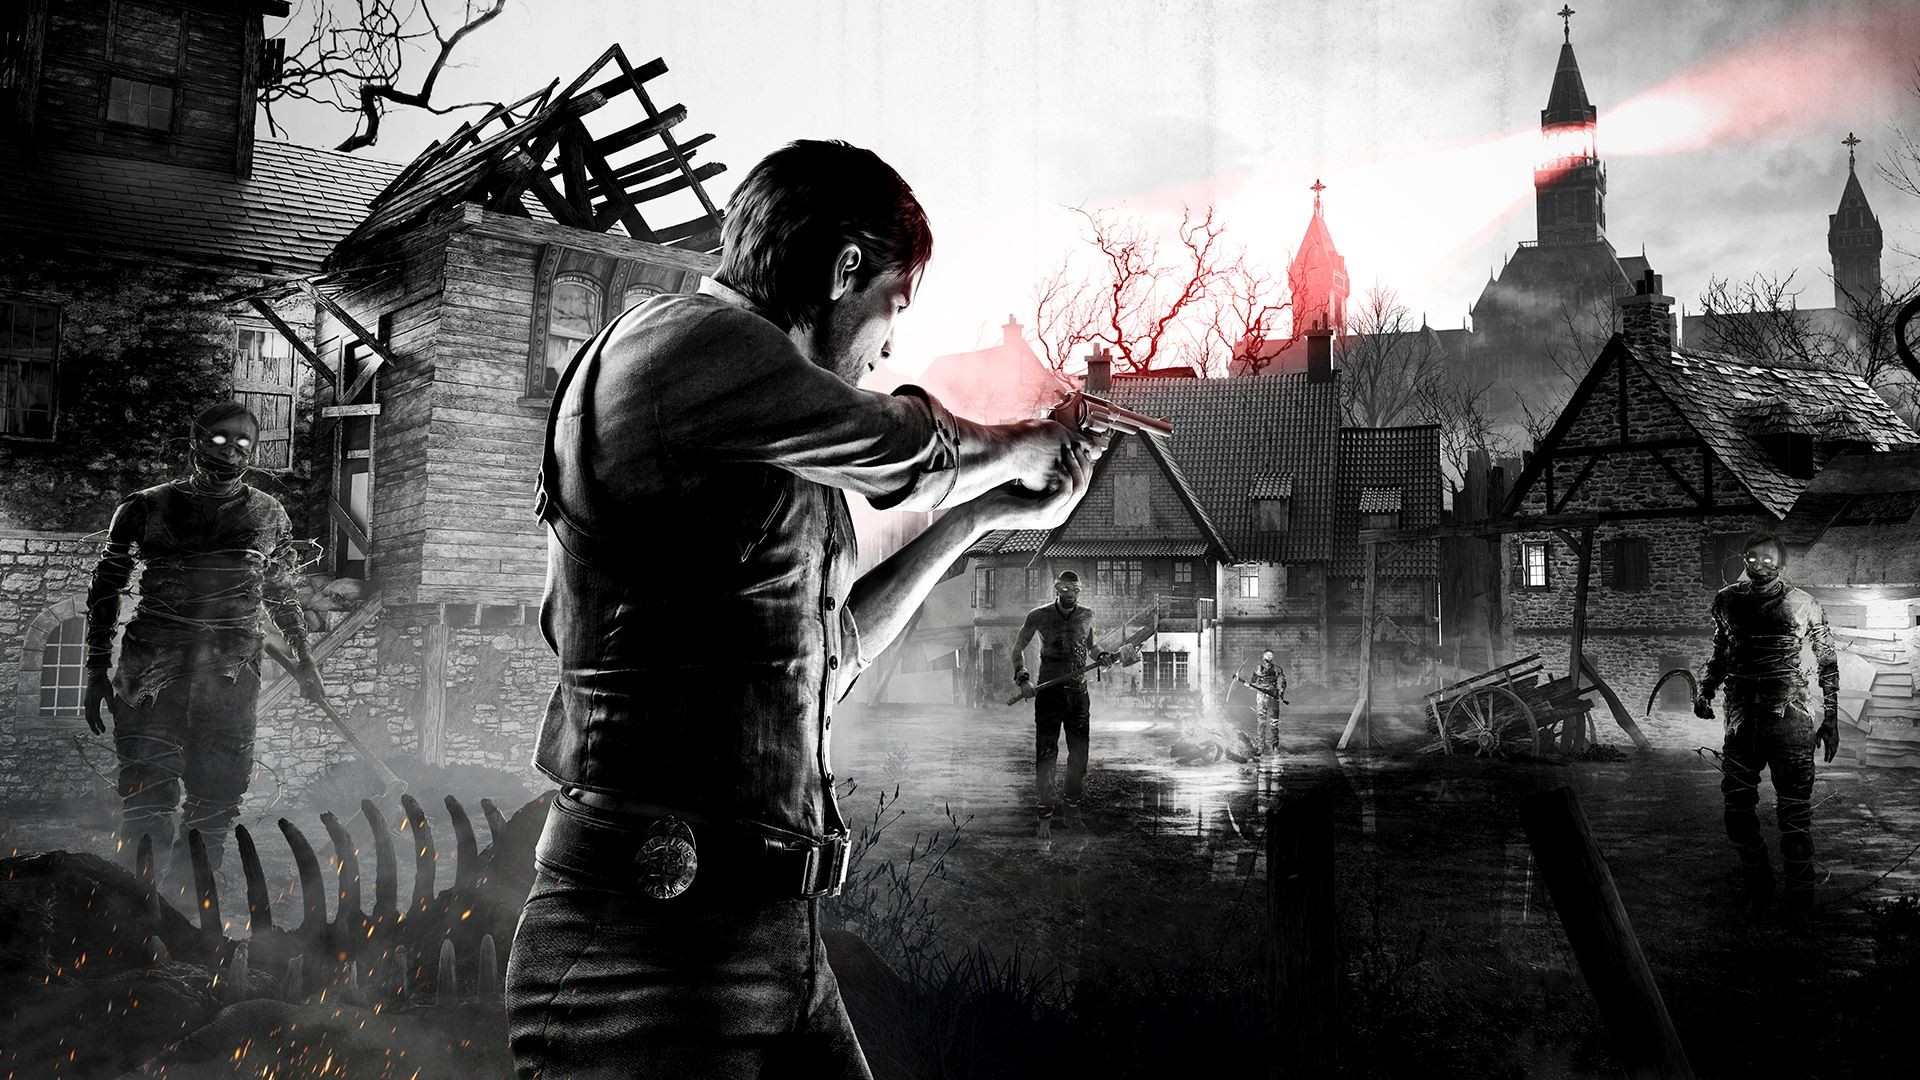 Wallpaper Theodore Harbinger The Evil Within 2 Hd: The Evil Within And Rage Did Well Enough To Justify